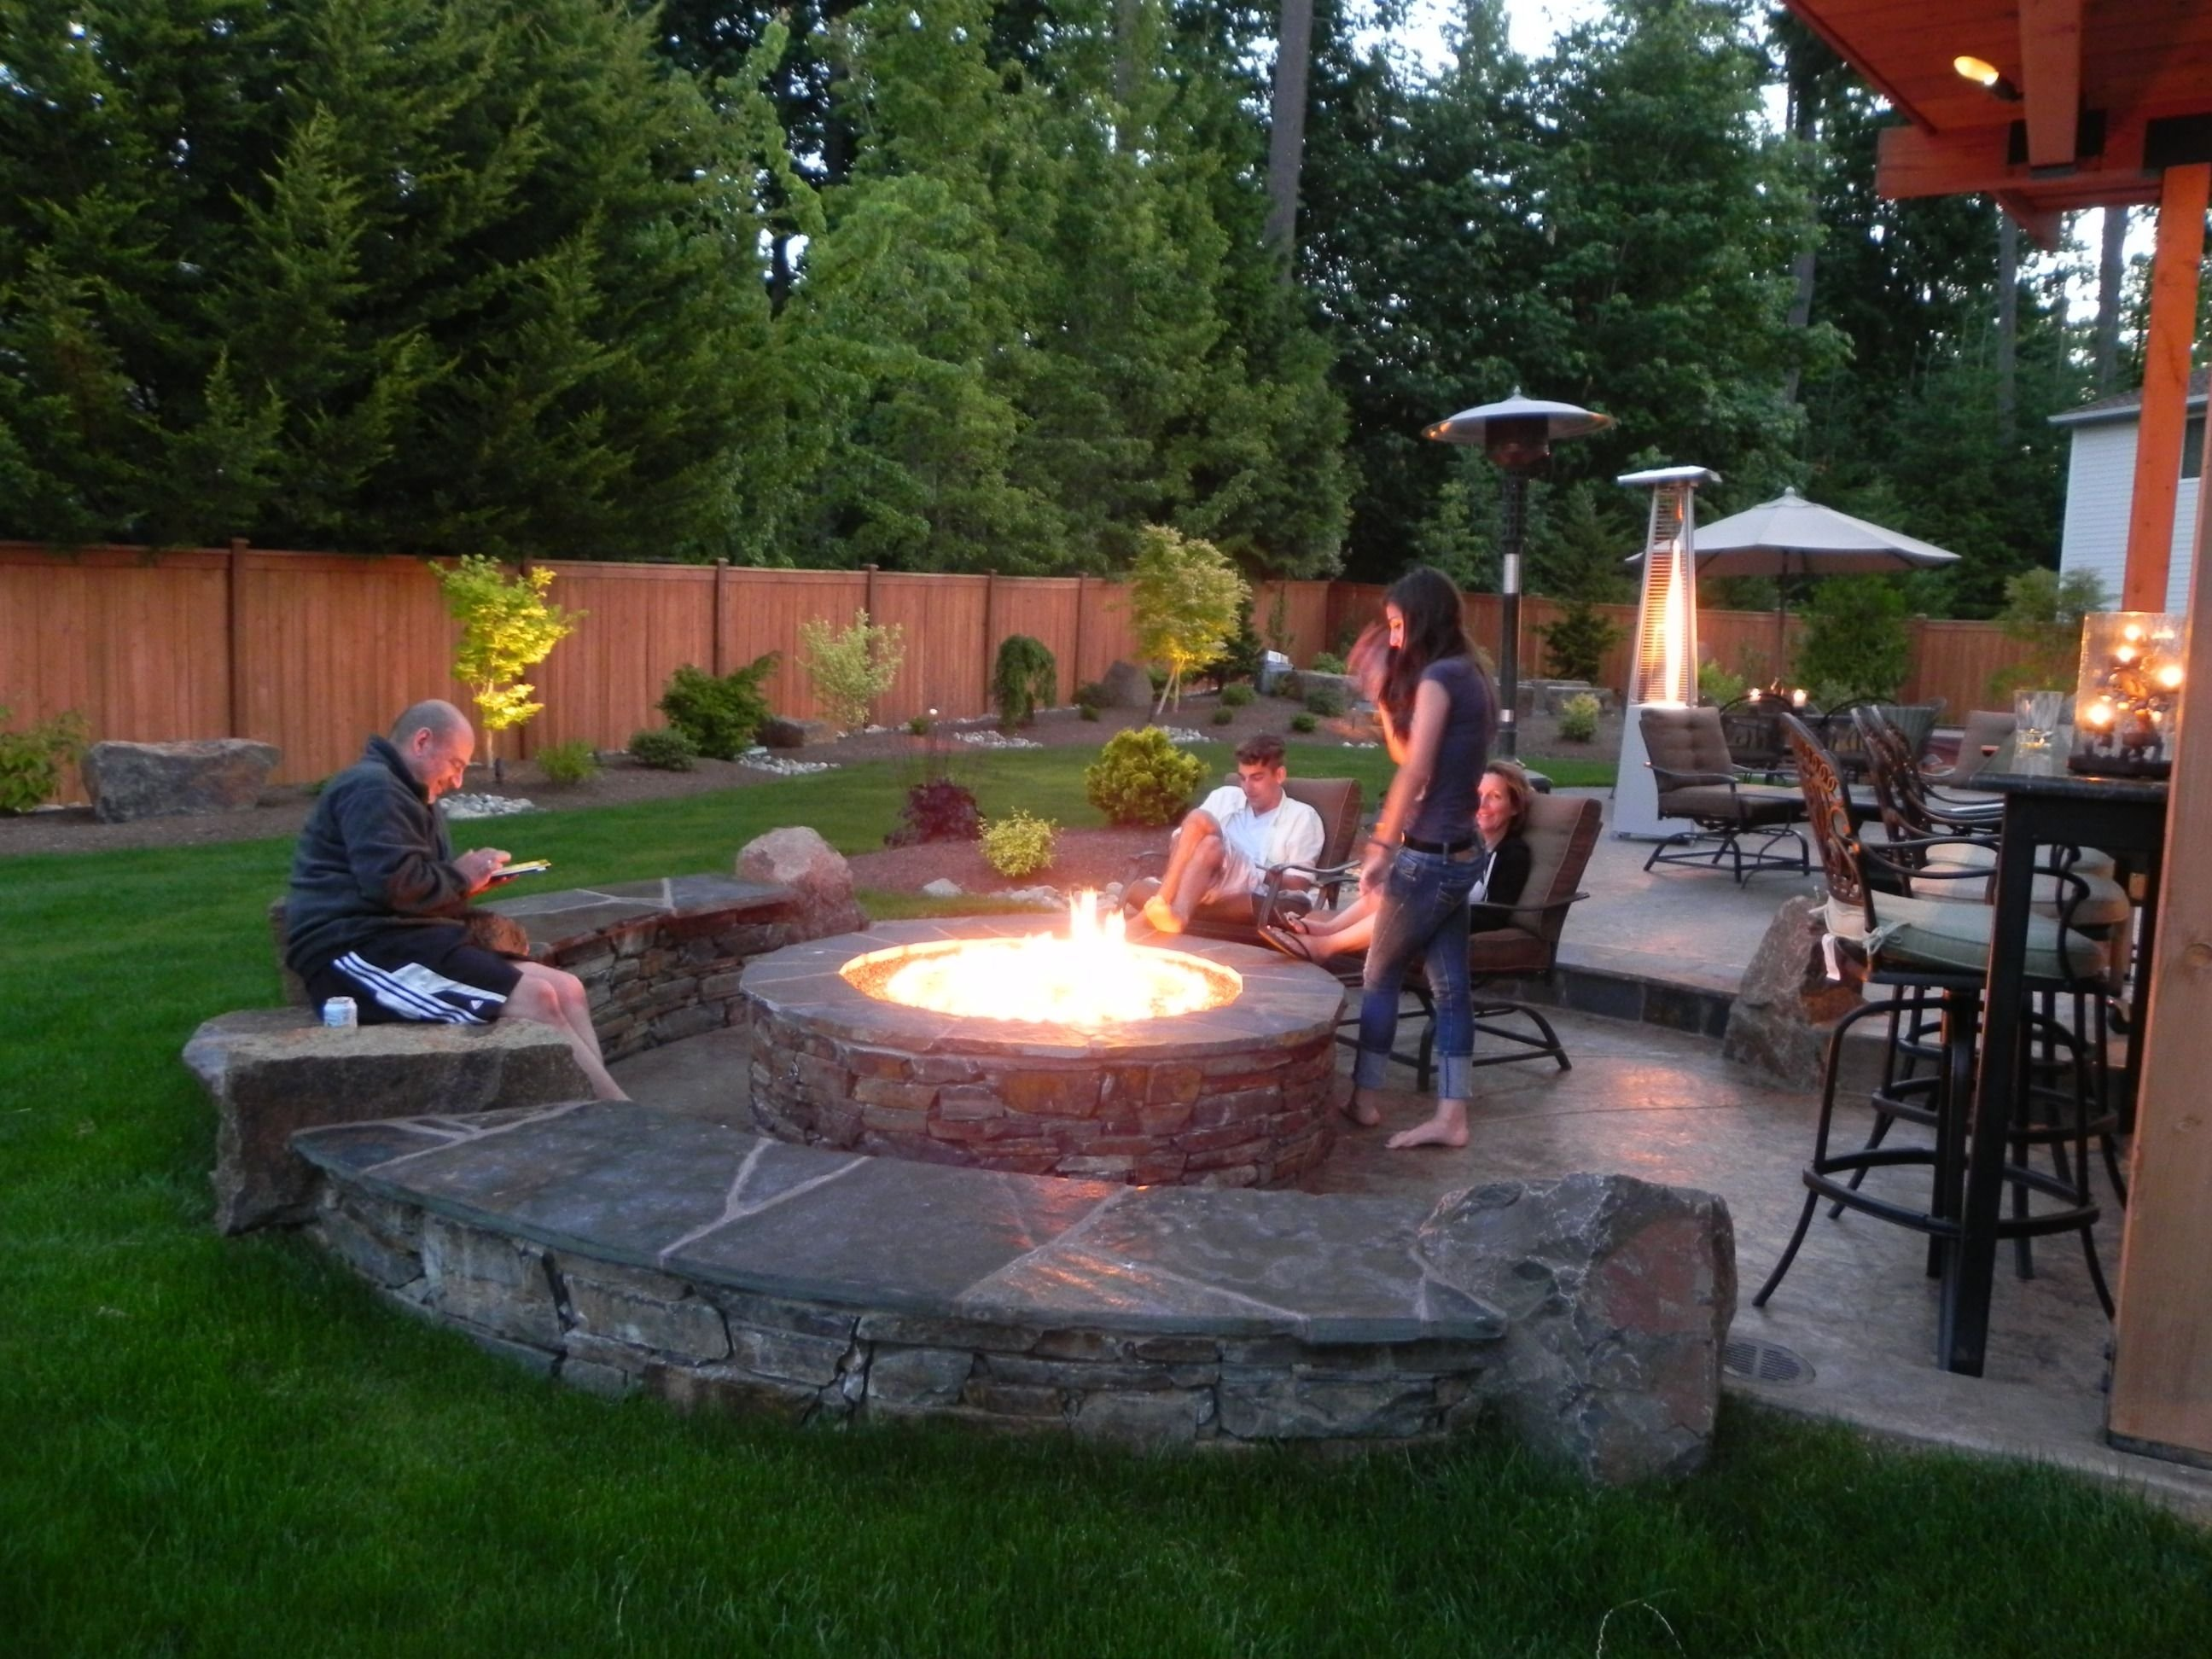 10 Fantastic Outdoor Patio Ideas With Fire Pit tested awesome fire pits new pit ideas rectangular patio model 2020